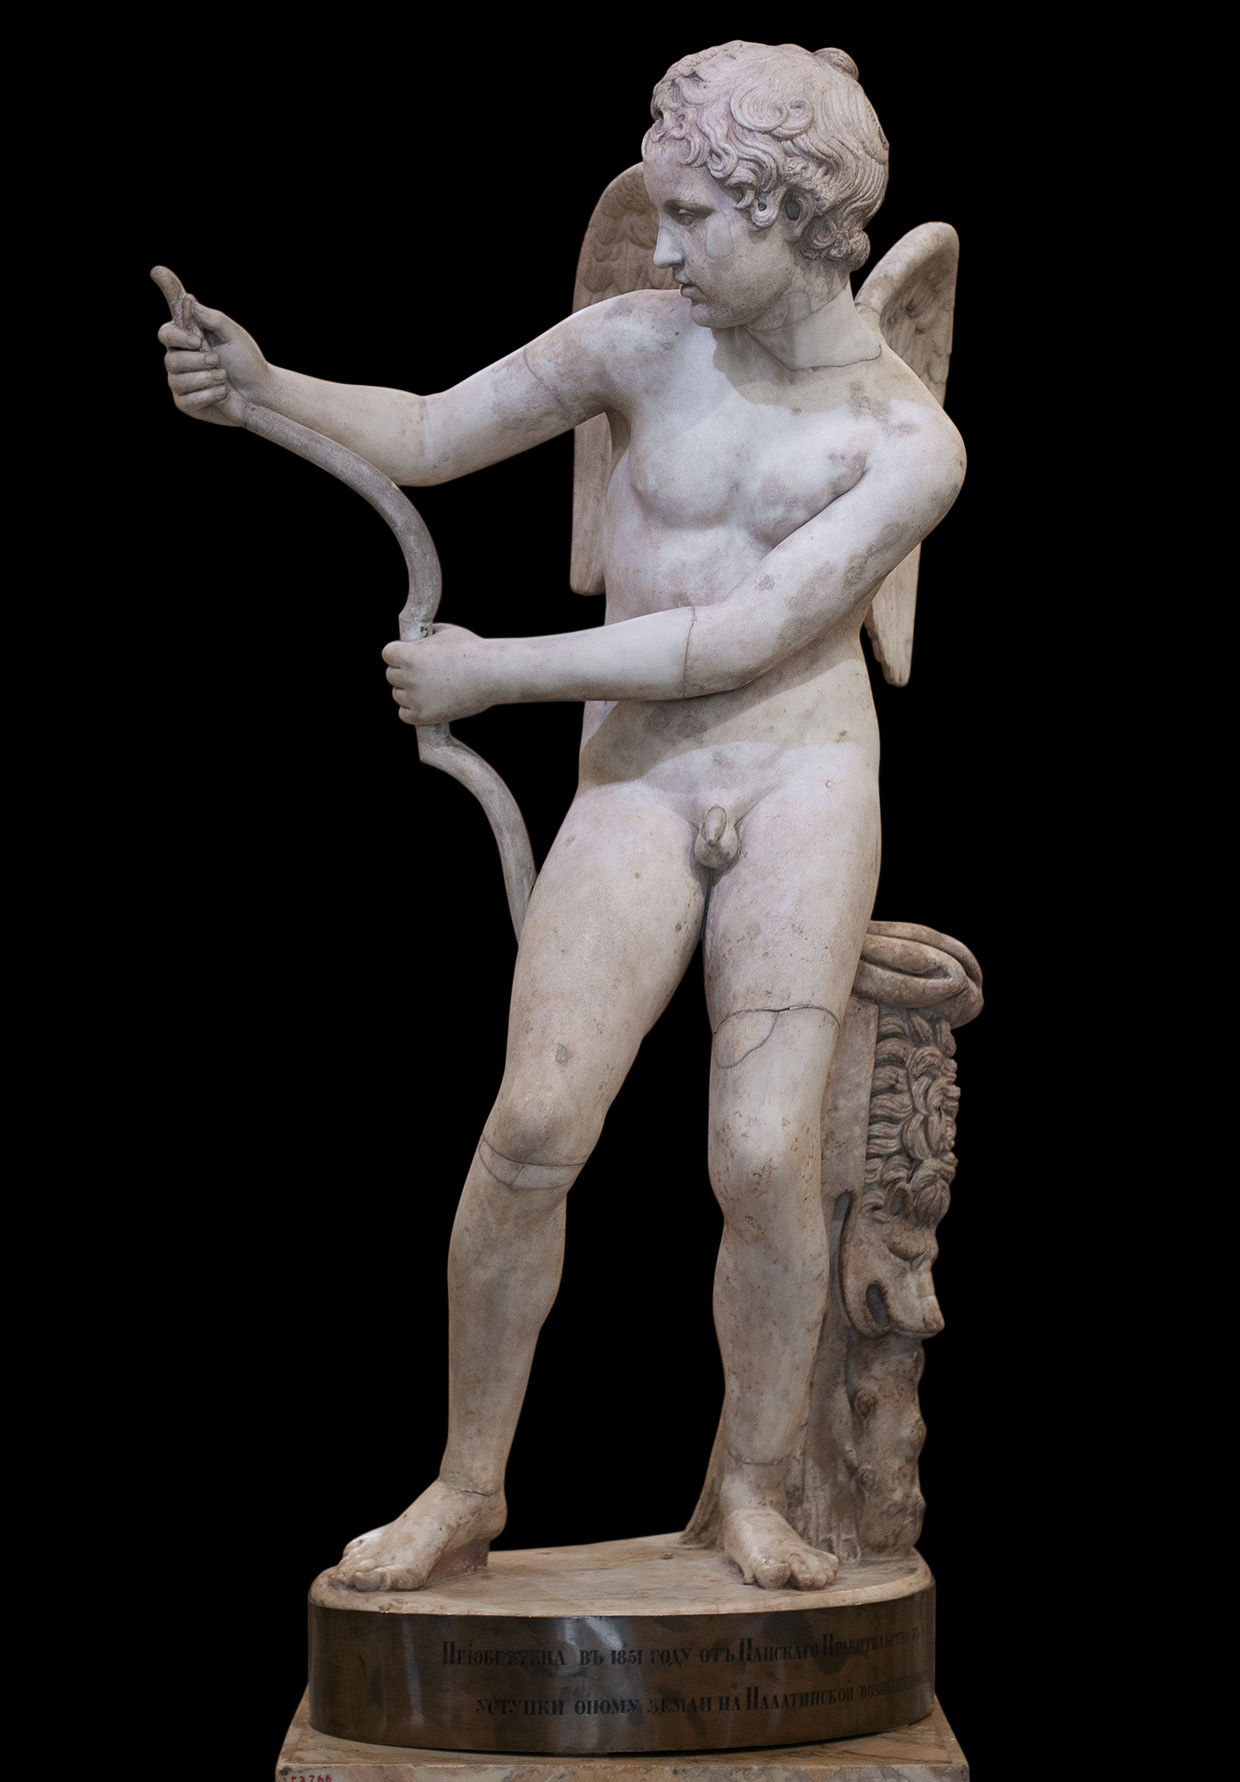 Eros stringing his bow. Marble. Second half of the 2nd cent. CE after a Greek original by Lysippos of the second half of the 4th cent. BCE. Inv. No. Гр. 3102 (А 199). Saint Petersburg, The State Hermitage Museum